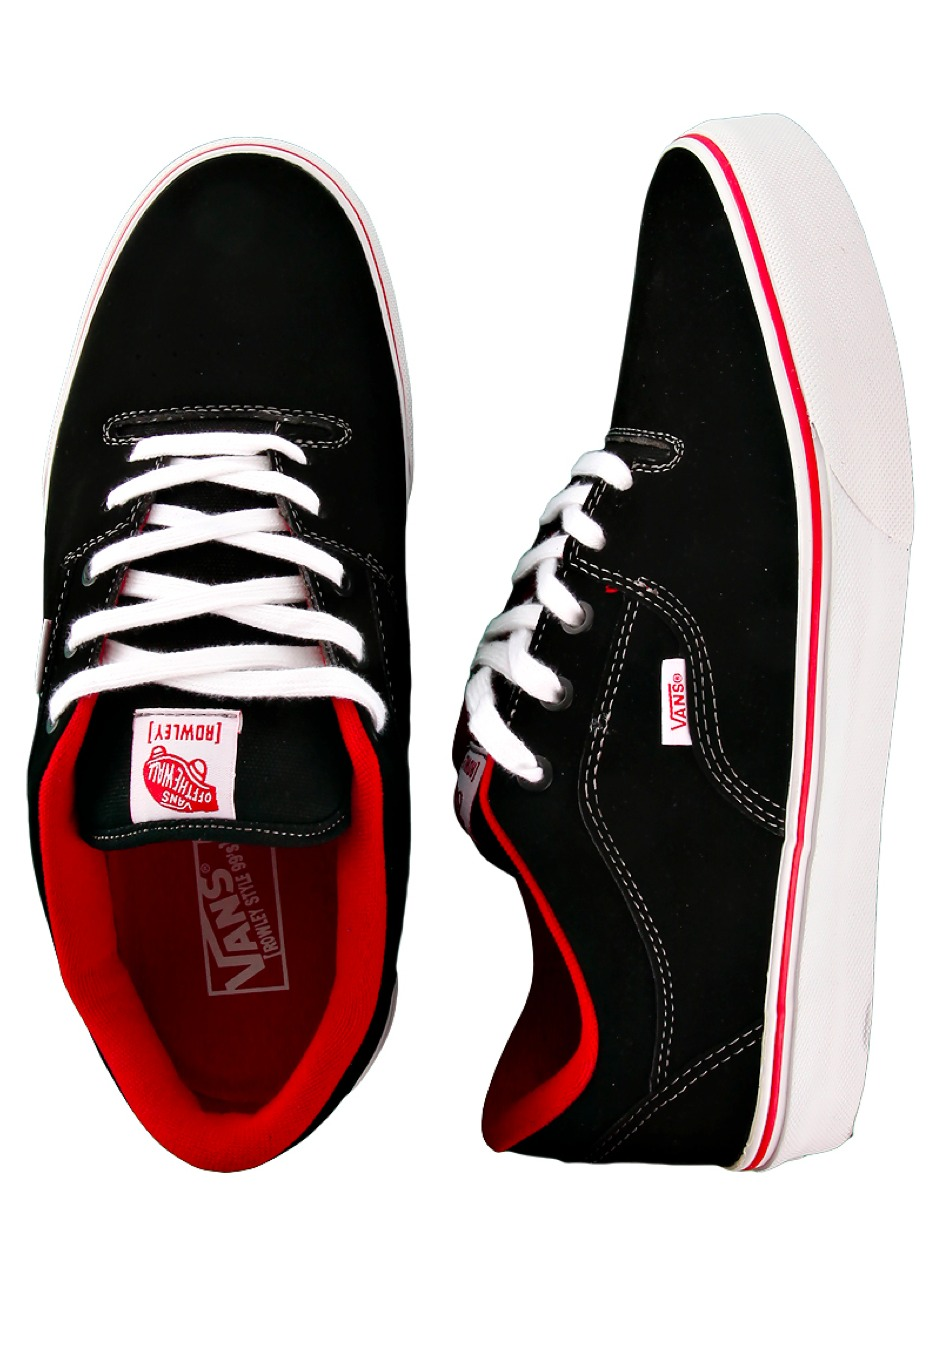 UK Vans Synthetic BlackWhite Shoes Style Rowley 99s 6ygYfb7v